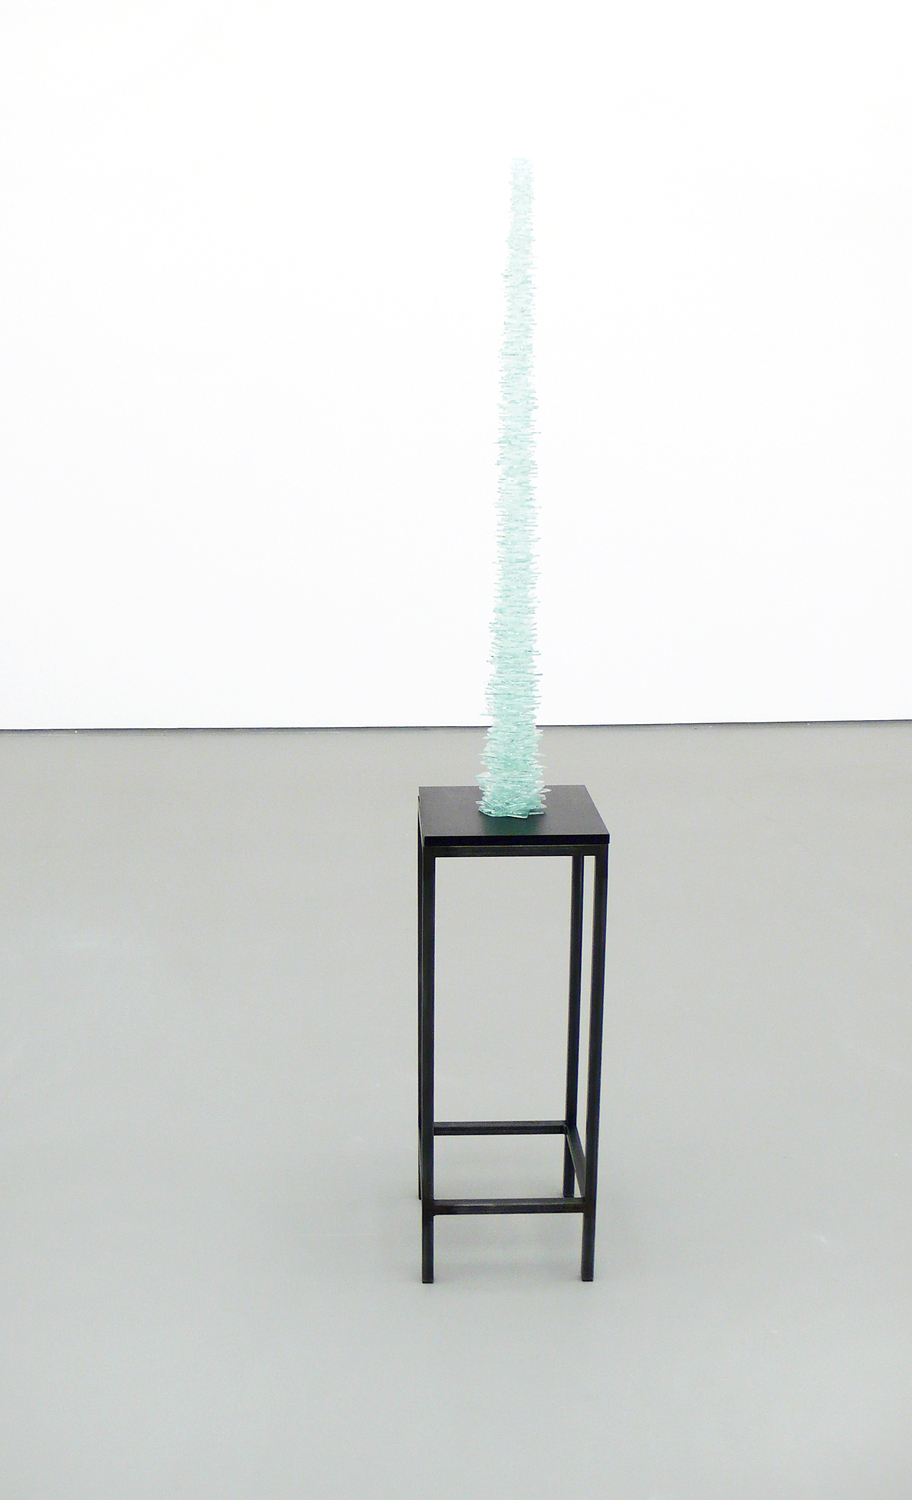 ahu   , 2011, glass, metal, wood, silicon,     dimensions variable   stray currents, 2011, Towner, Eastbourne